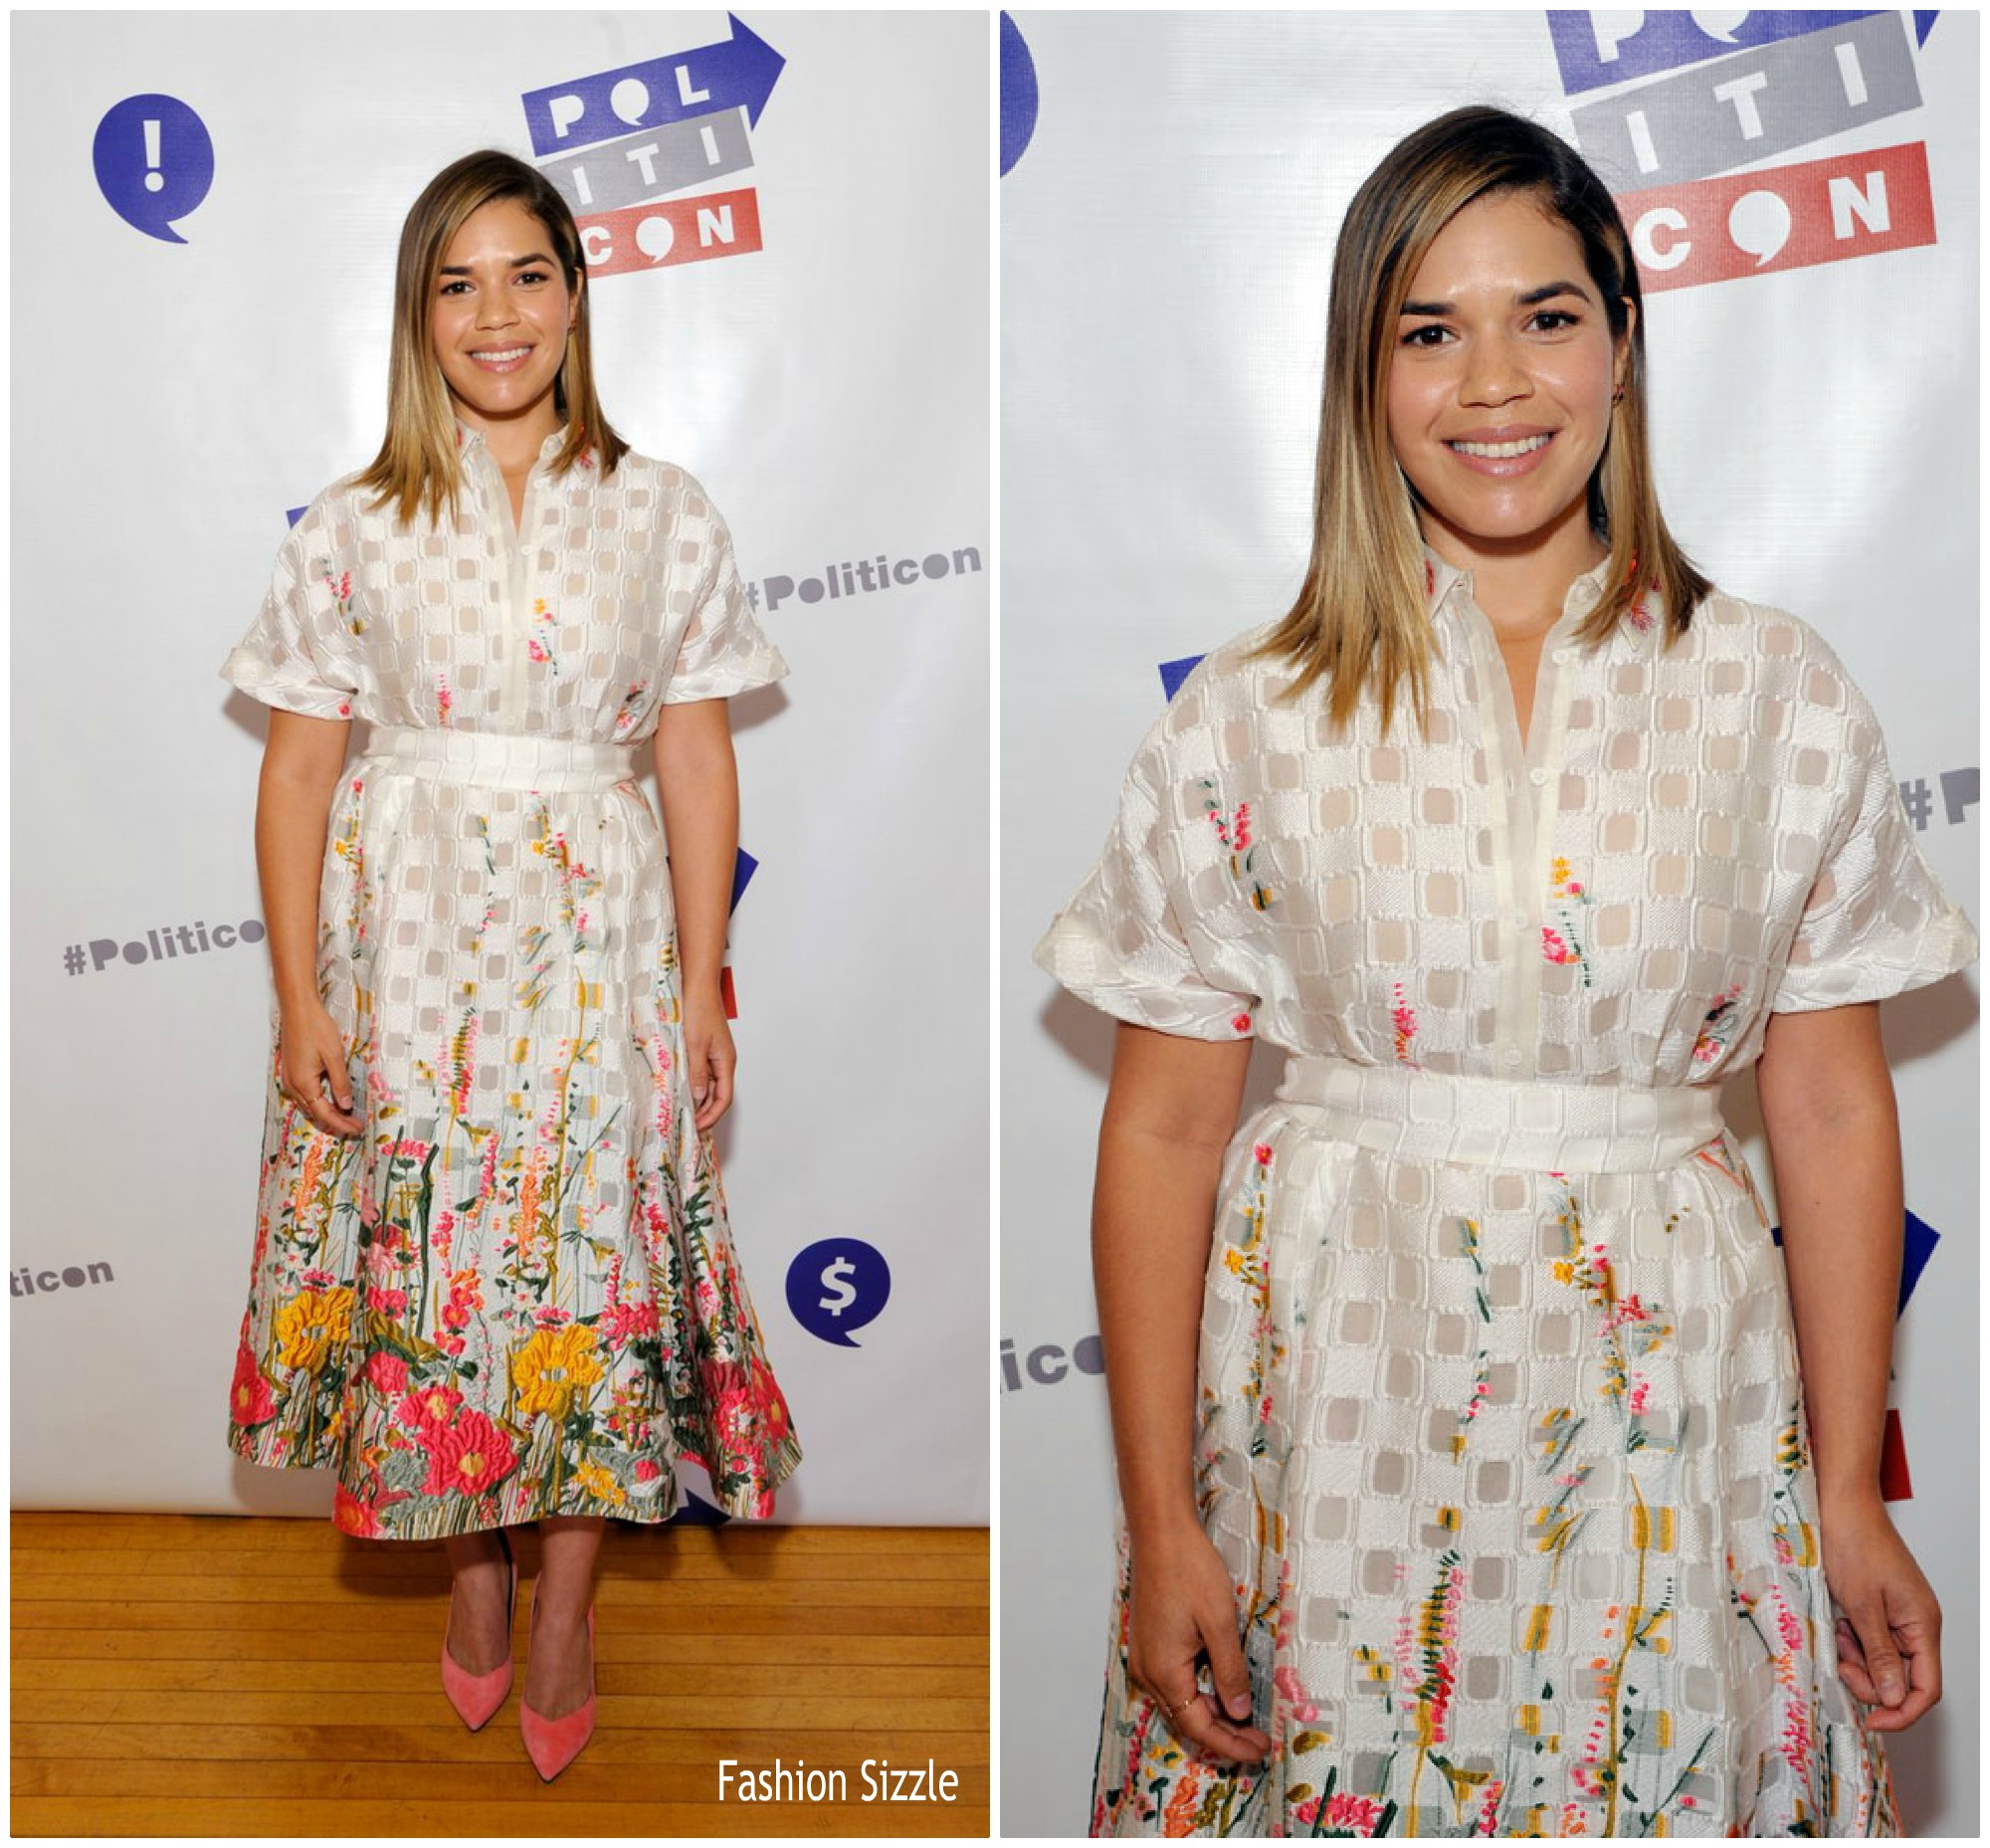 america-ferrera-in-lea-rose-politicon-2017